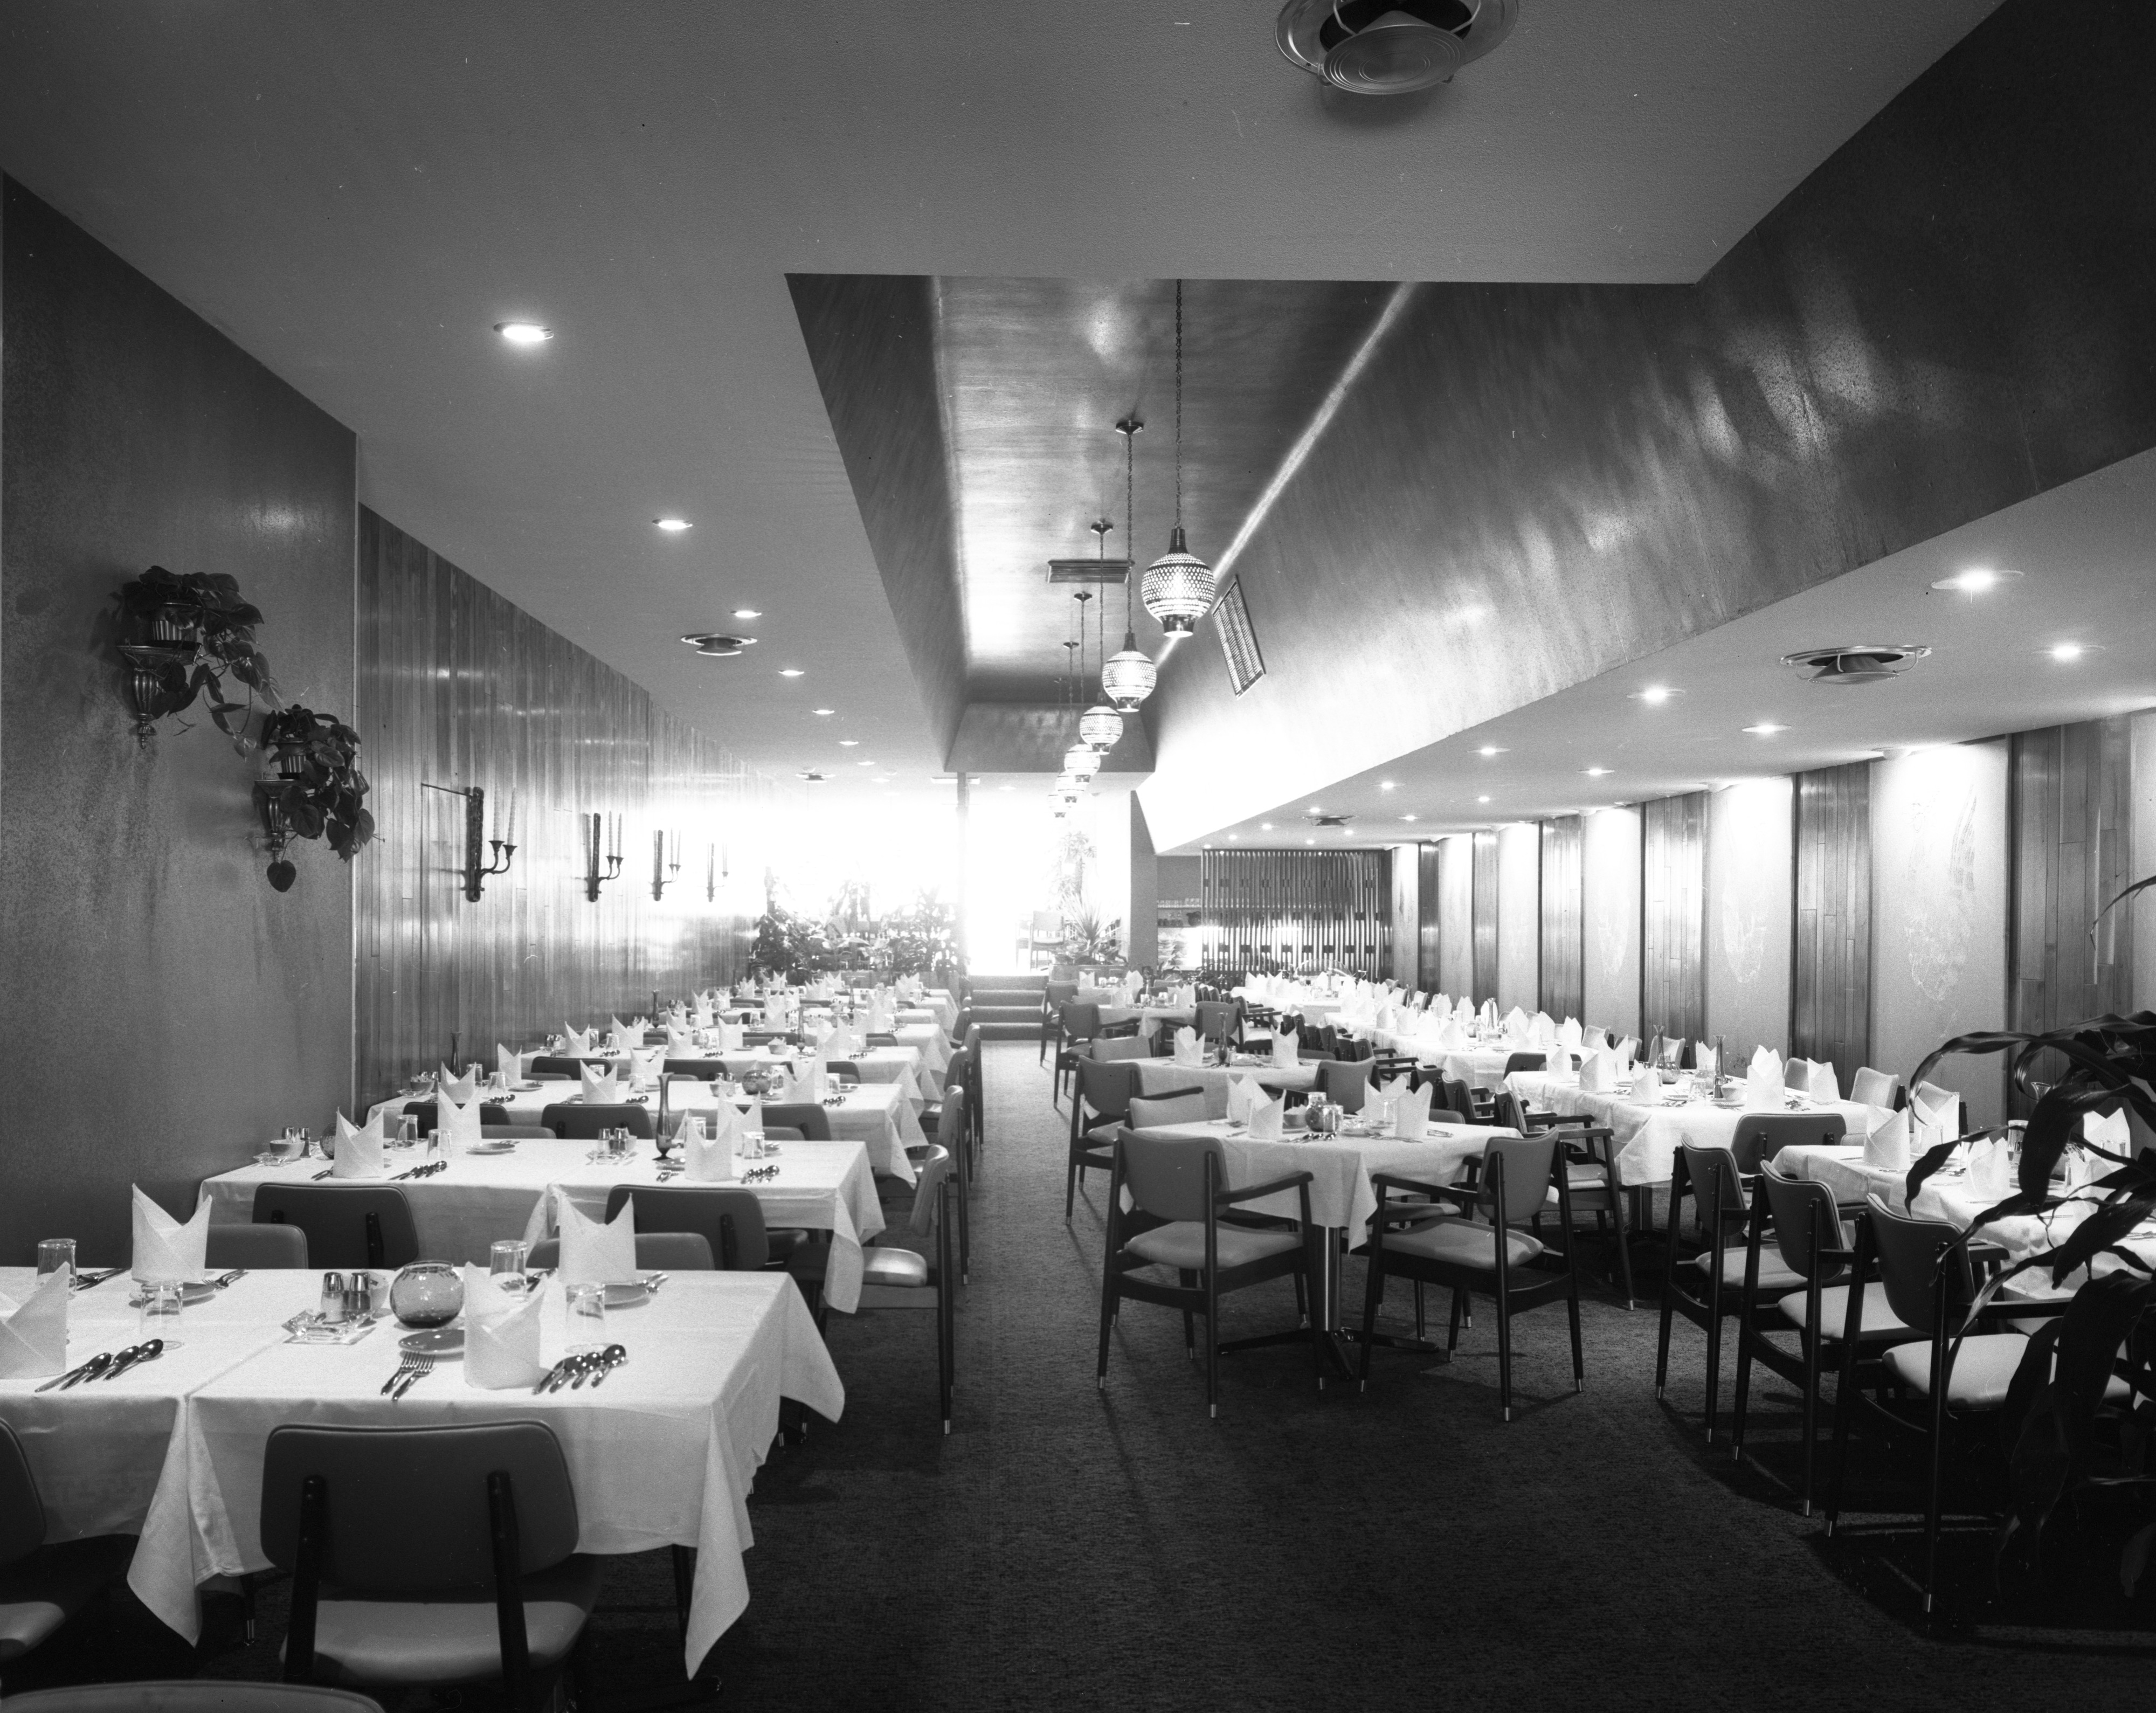 The Rubaiyat Continental Dining Room, October 6, 1960 image